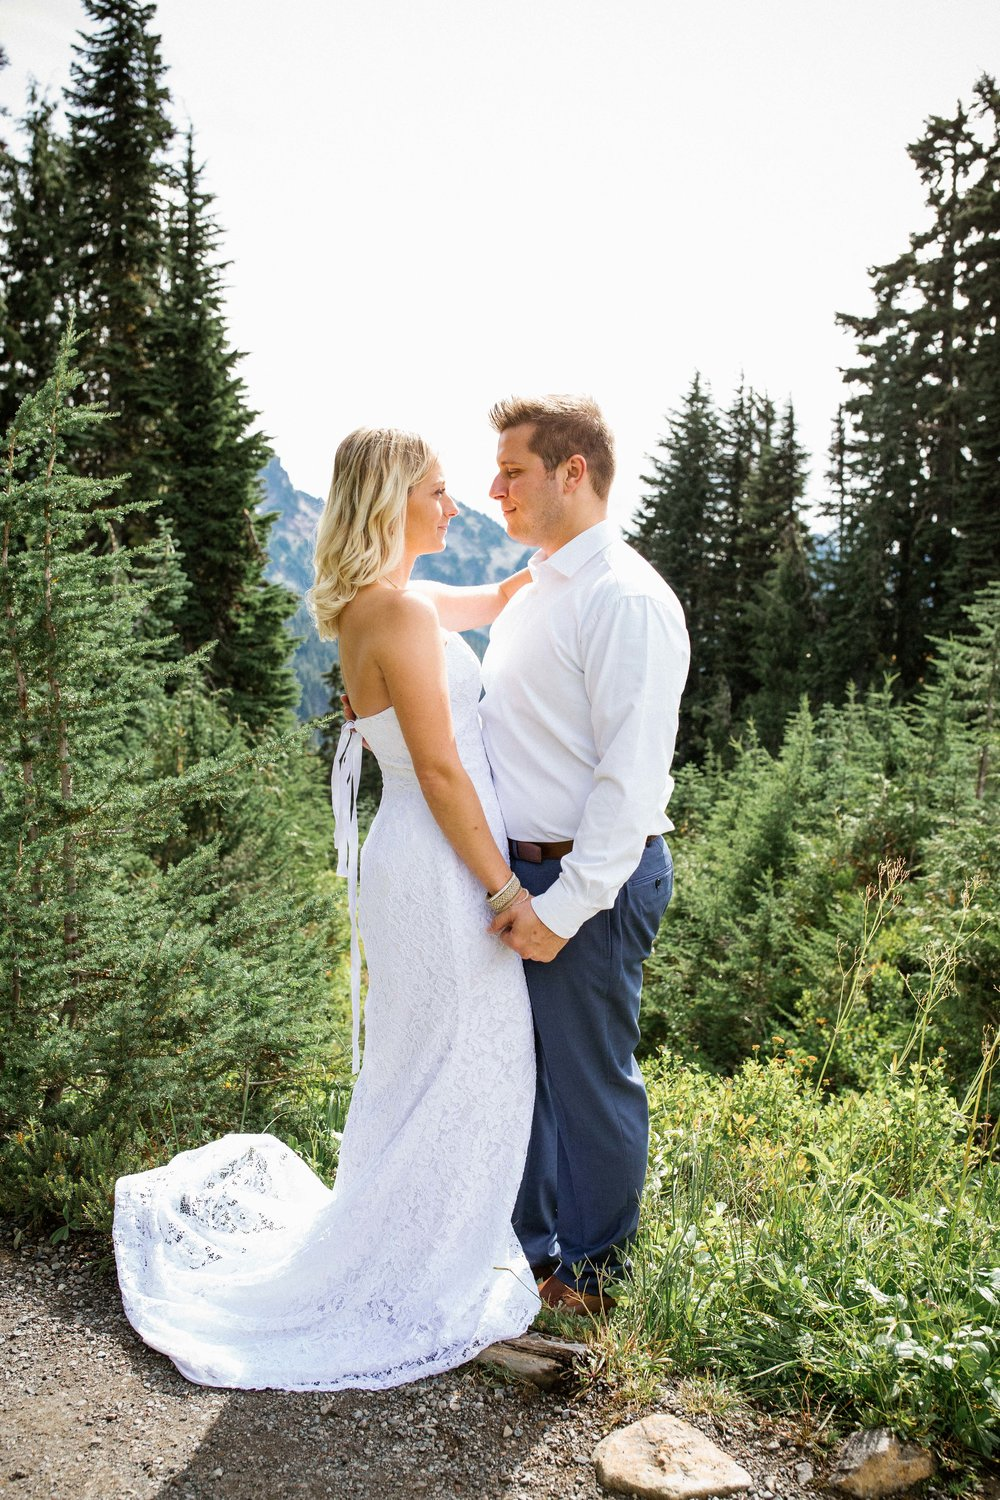 Ashley&Josh-Sneak Peek!BLOG-58.jpg